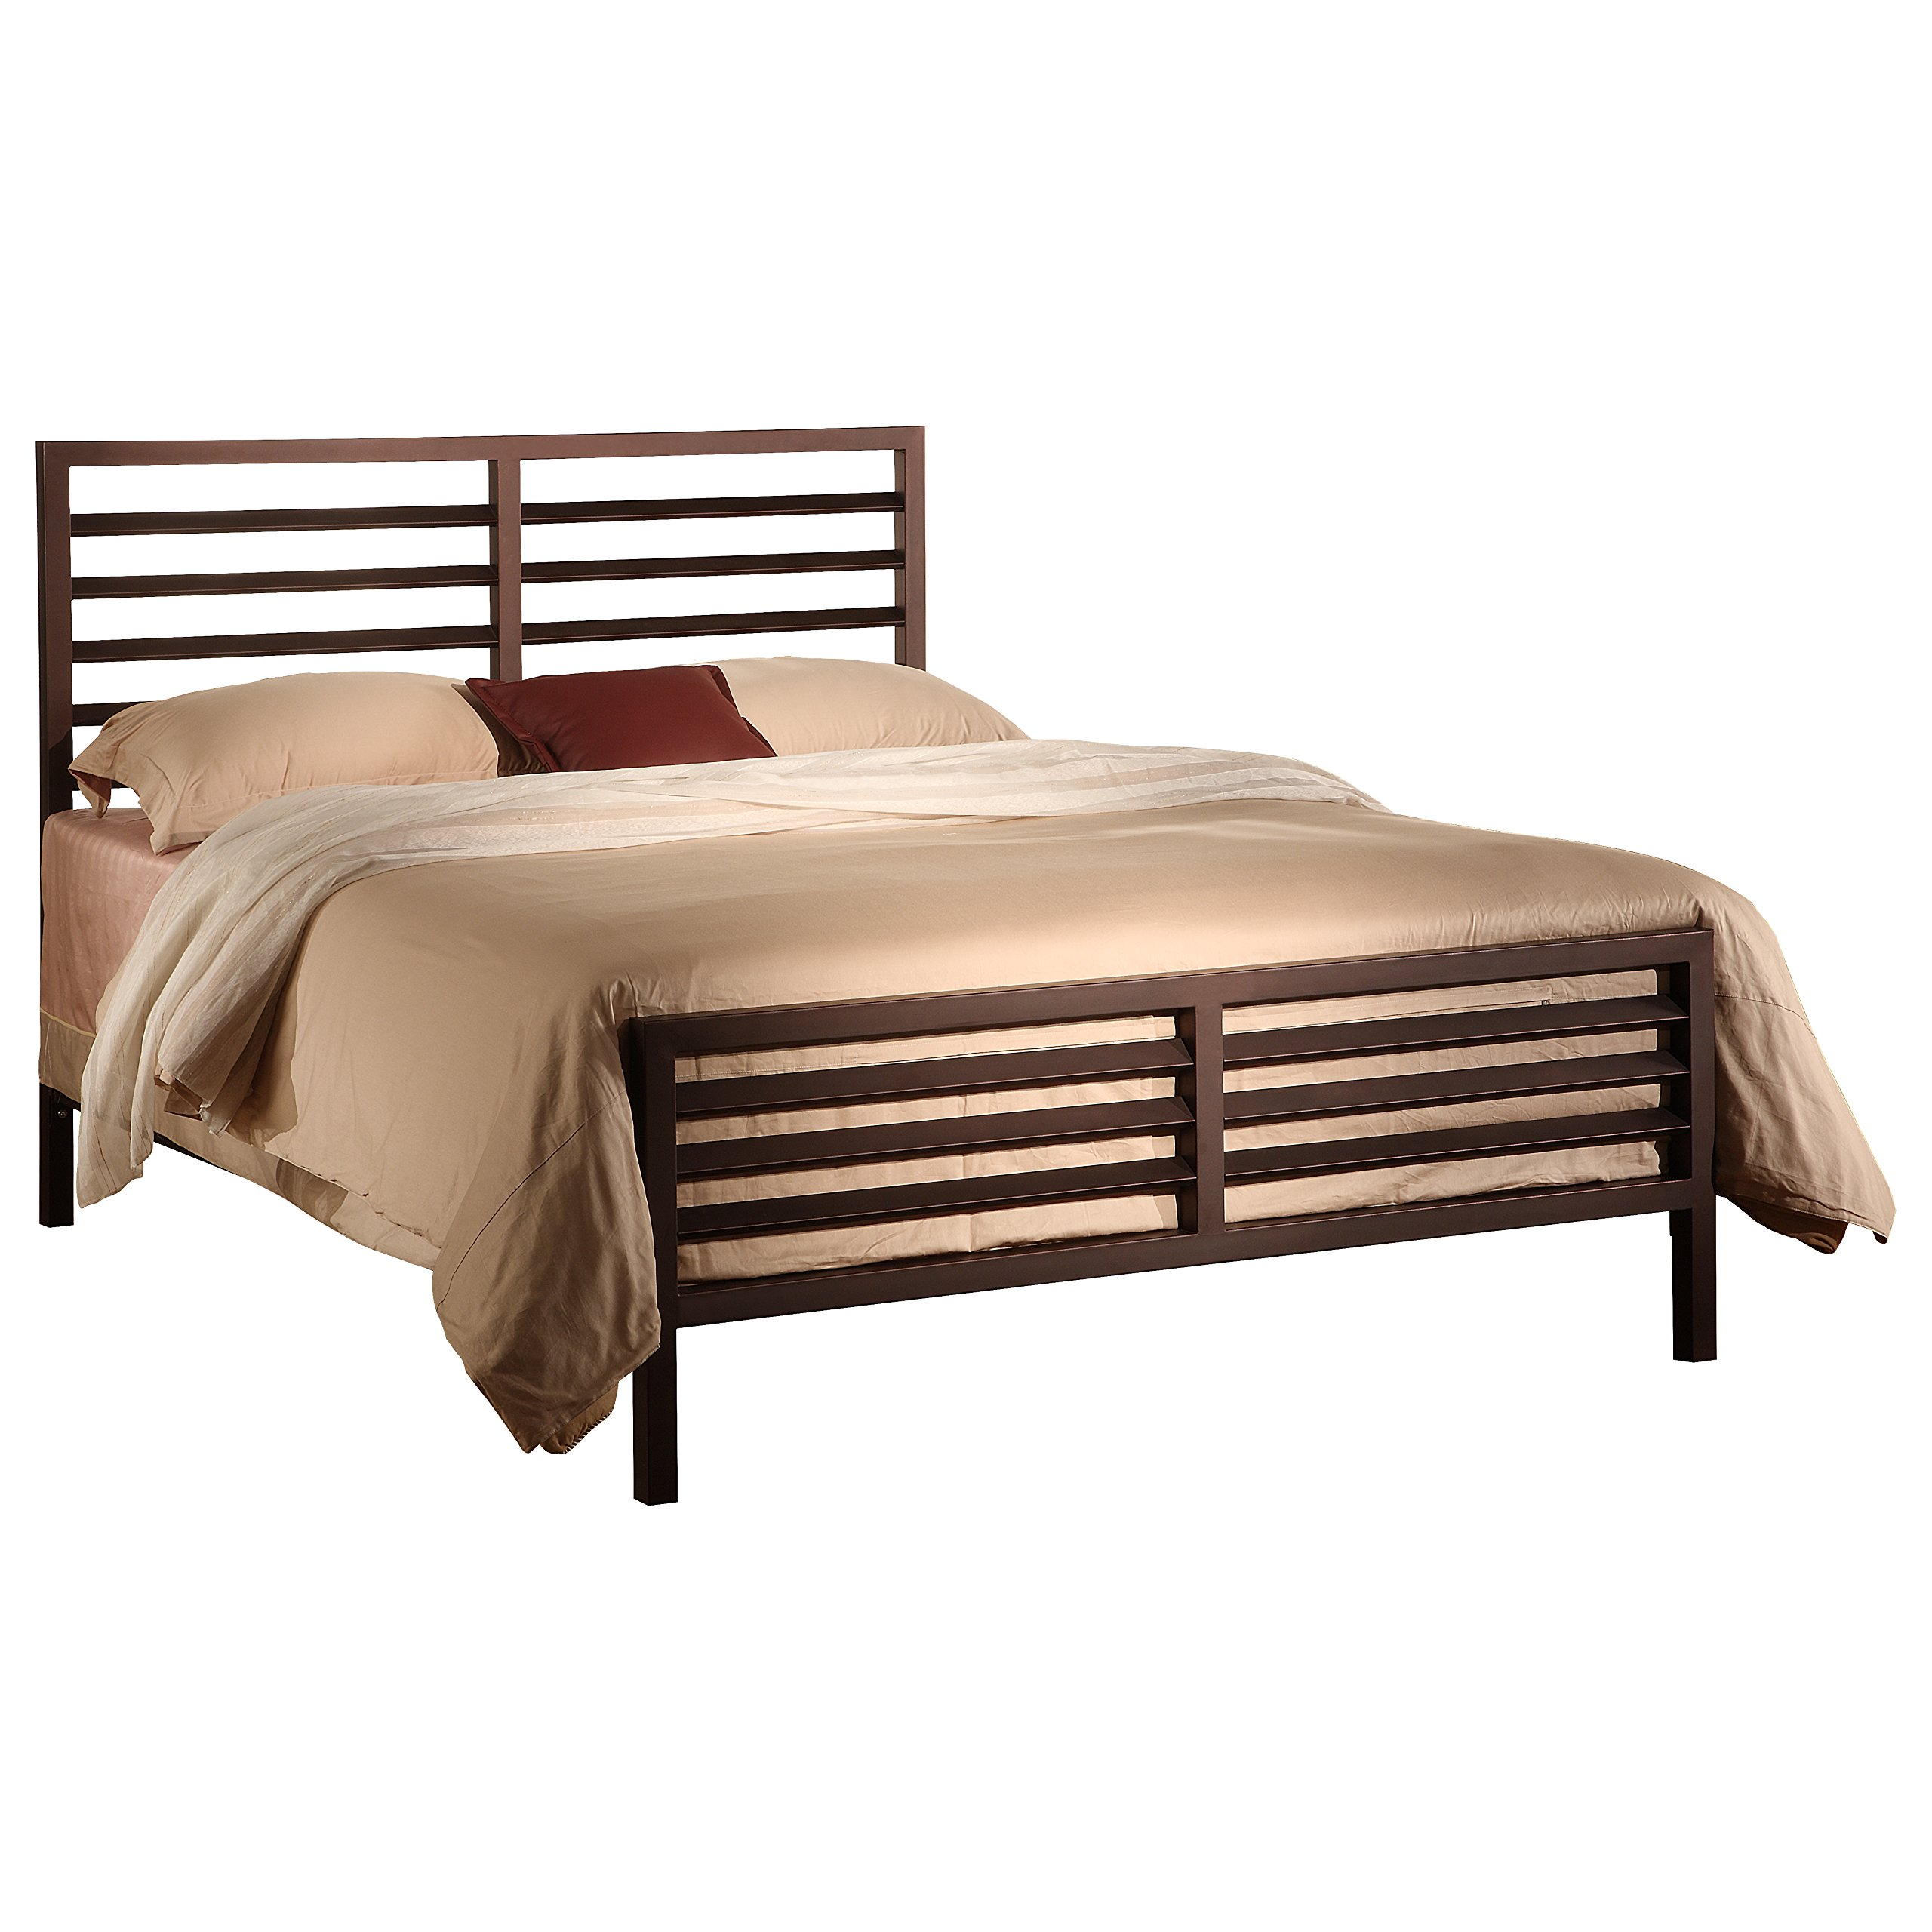 Pilaster Designs - Bronze Metal Annabelle Collection Bed Headboard Footboard Rails & Slats (Queen) by Pilaster Designs